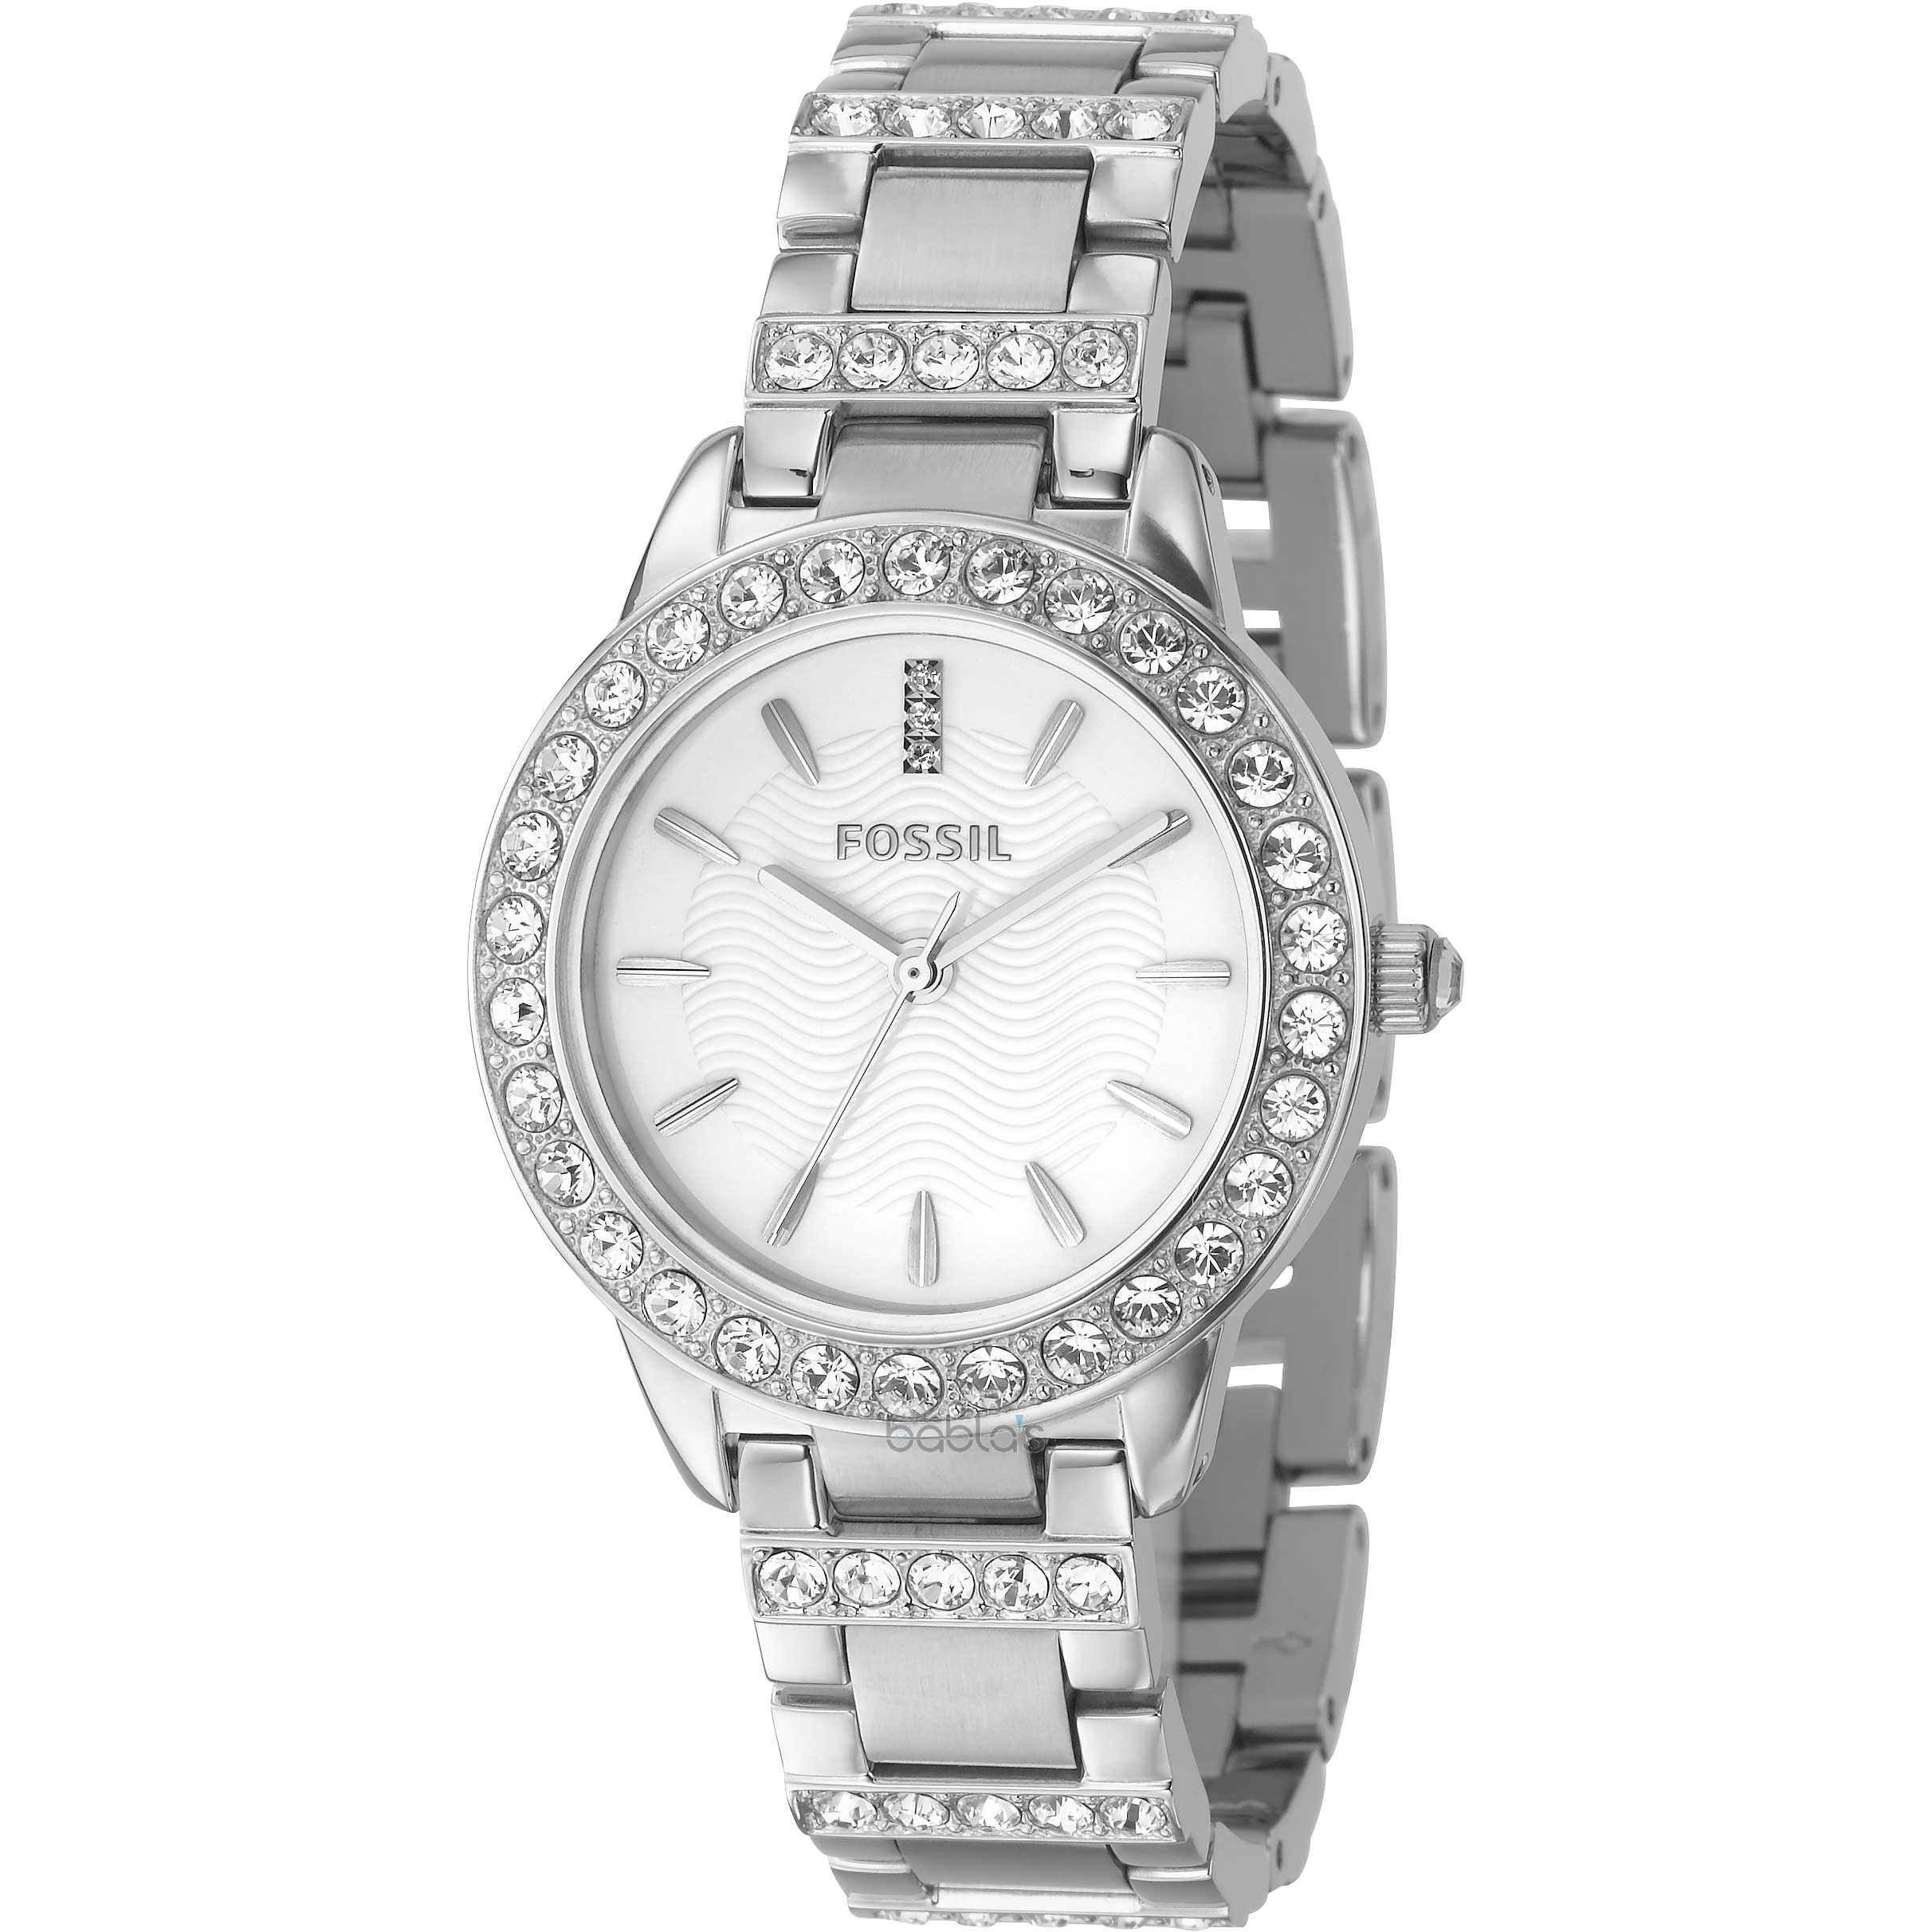 Fossil Dress Es2362 Women's Watch